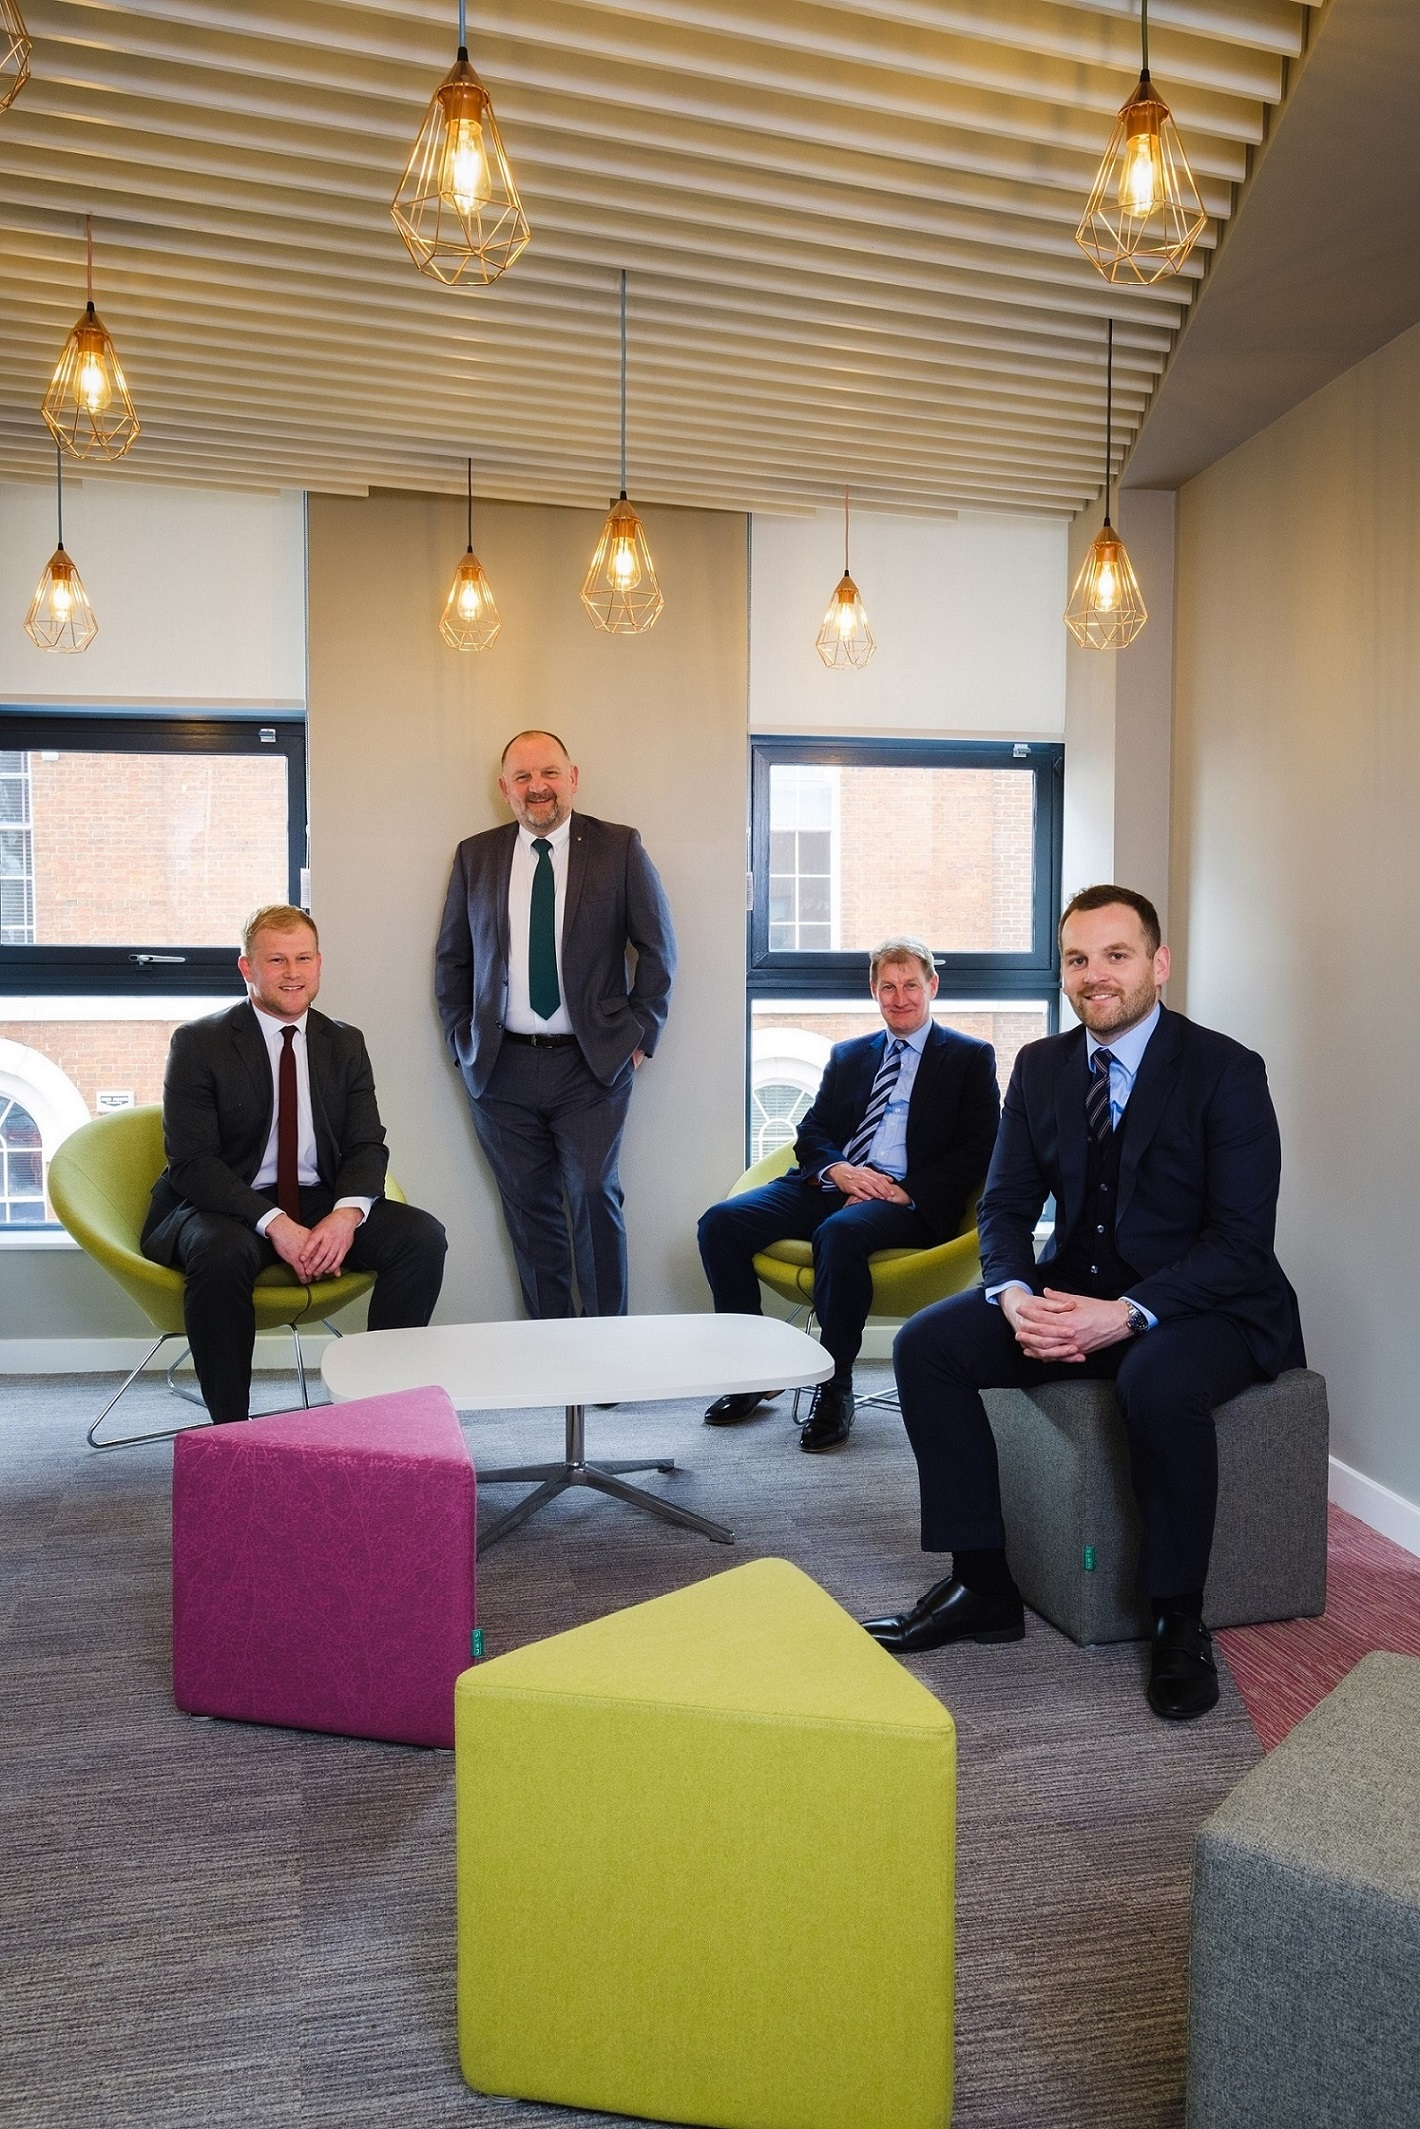 From left, Wykeland's John Gouldthorp, Mike Rice, David Donkin of Wykeland, and James Rice in the colourful new Hugh Rice offices in Hull's Fruit Market waterfront quarter.